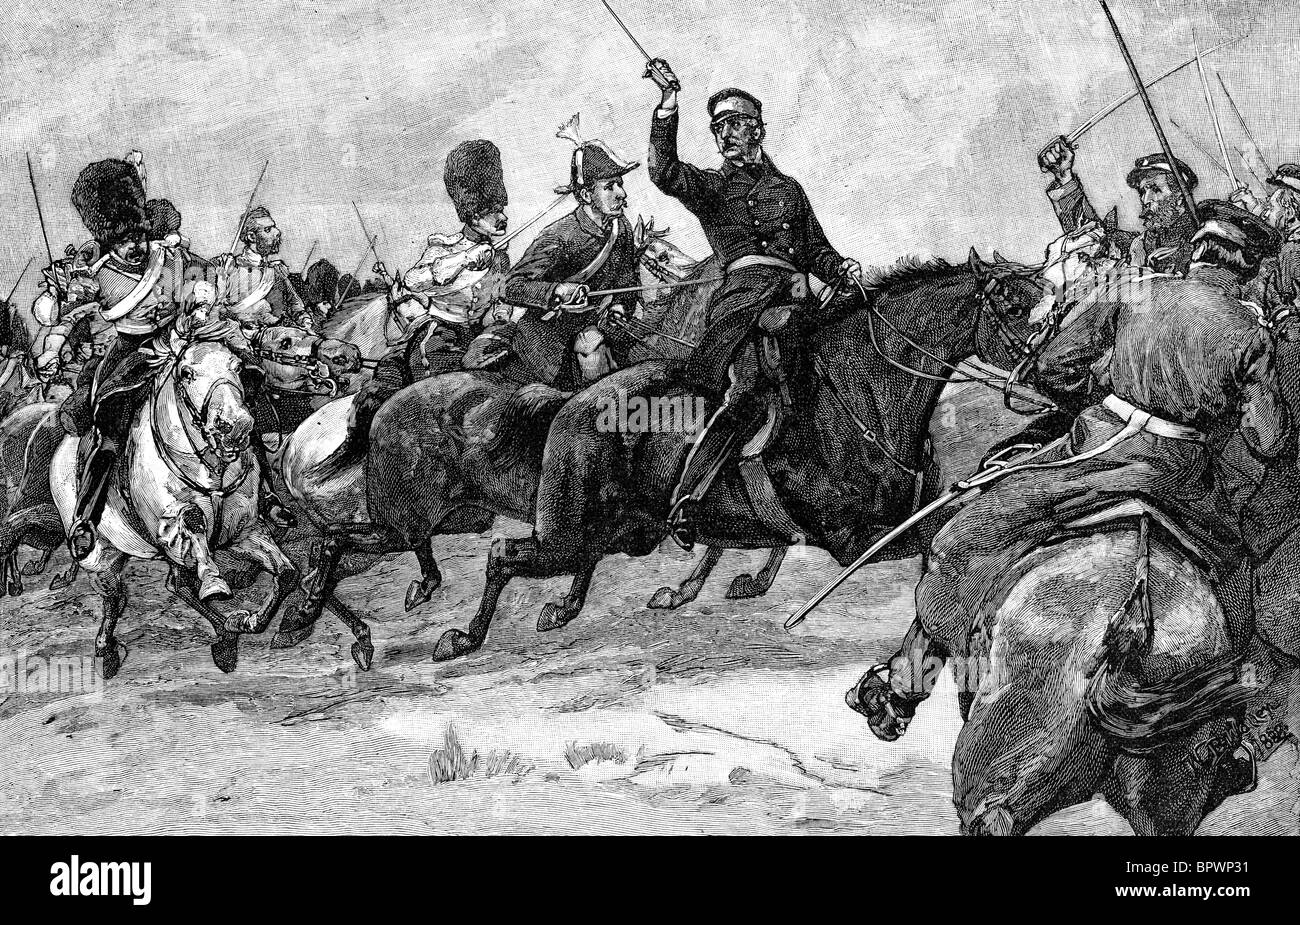 General Sir James Yorke Scarlett leading the 5th Dragoon Guards (Heavy Cavalry Brigade) during the Battle of Balaklava - Stock Image